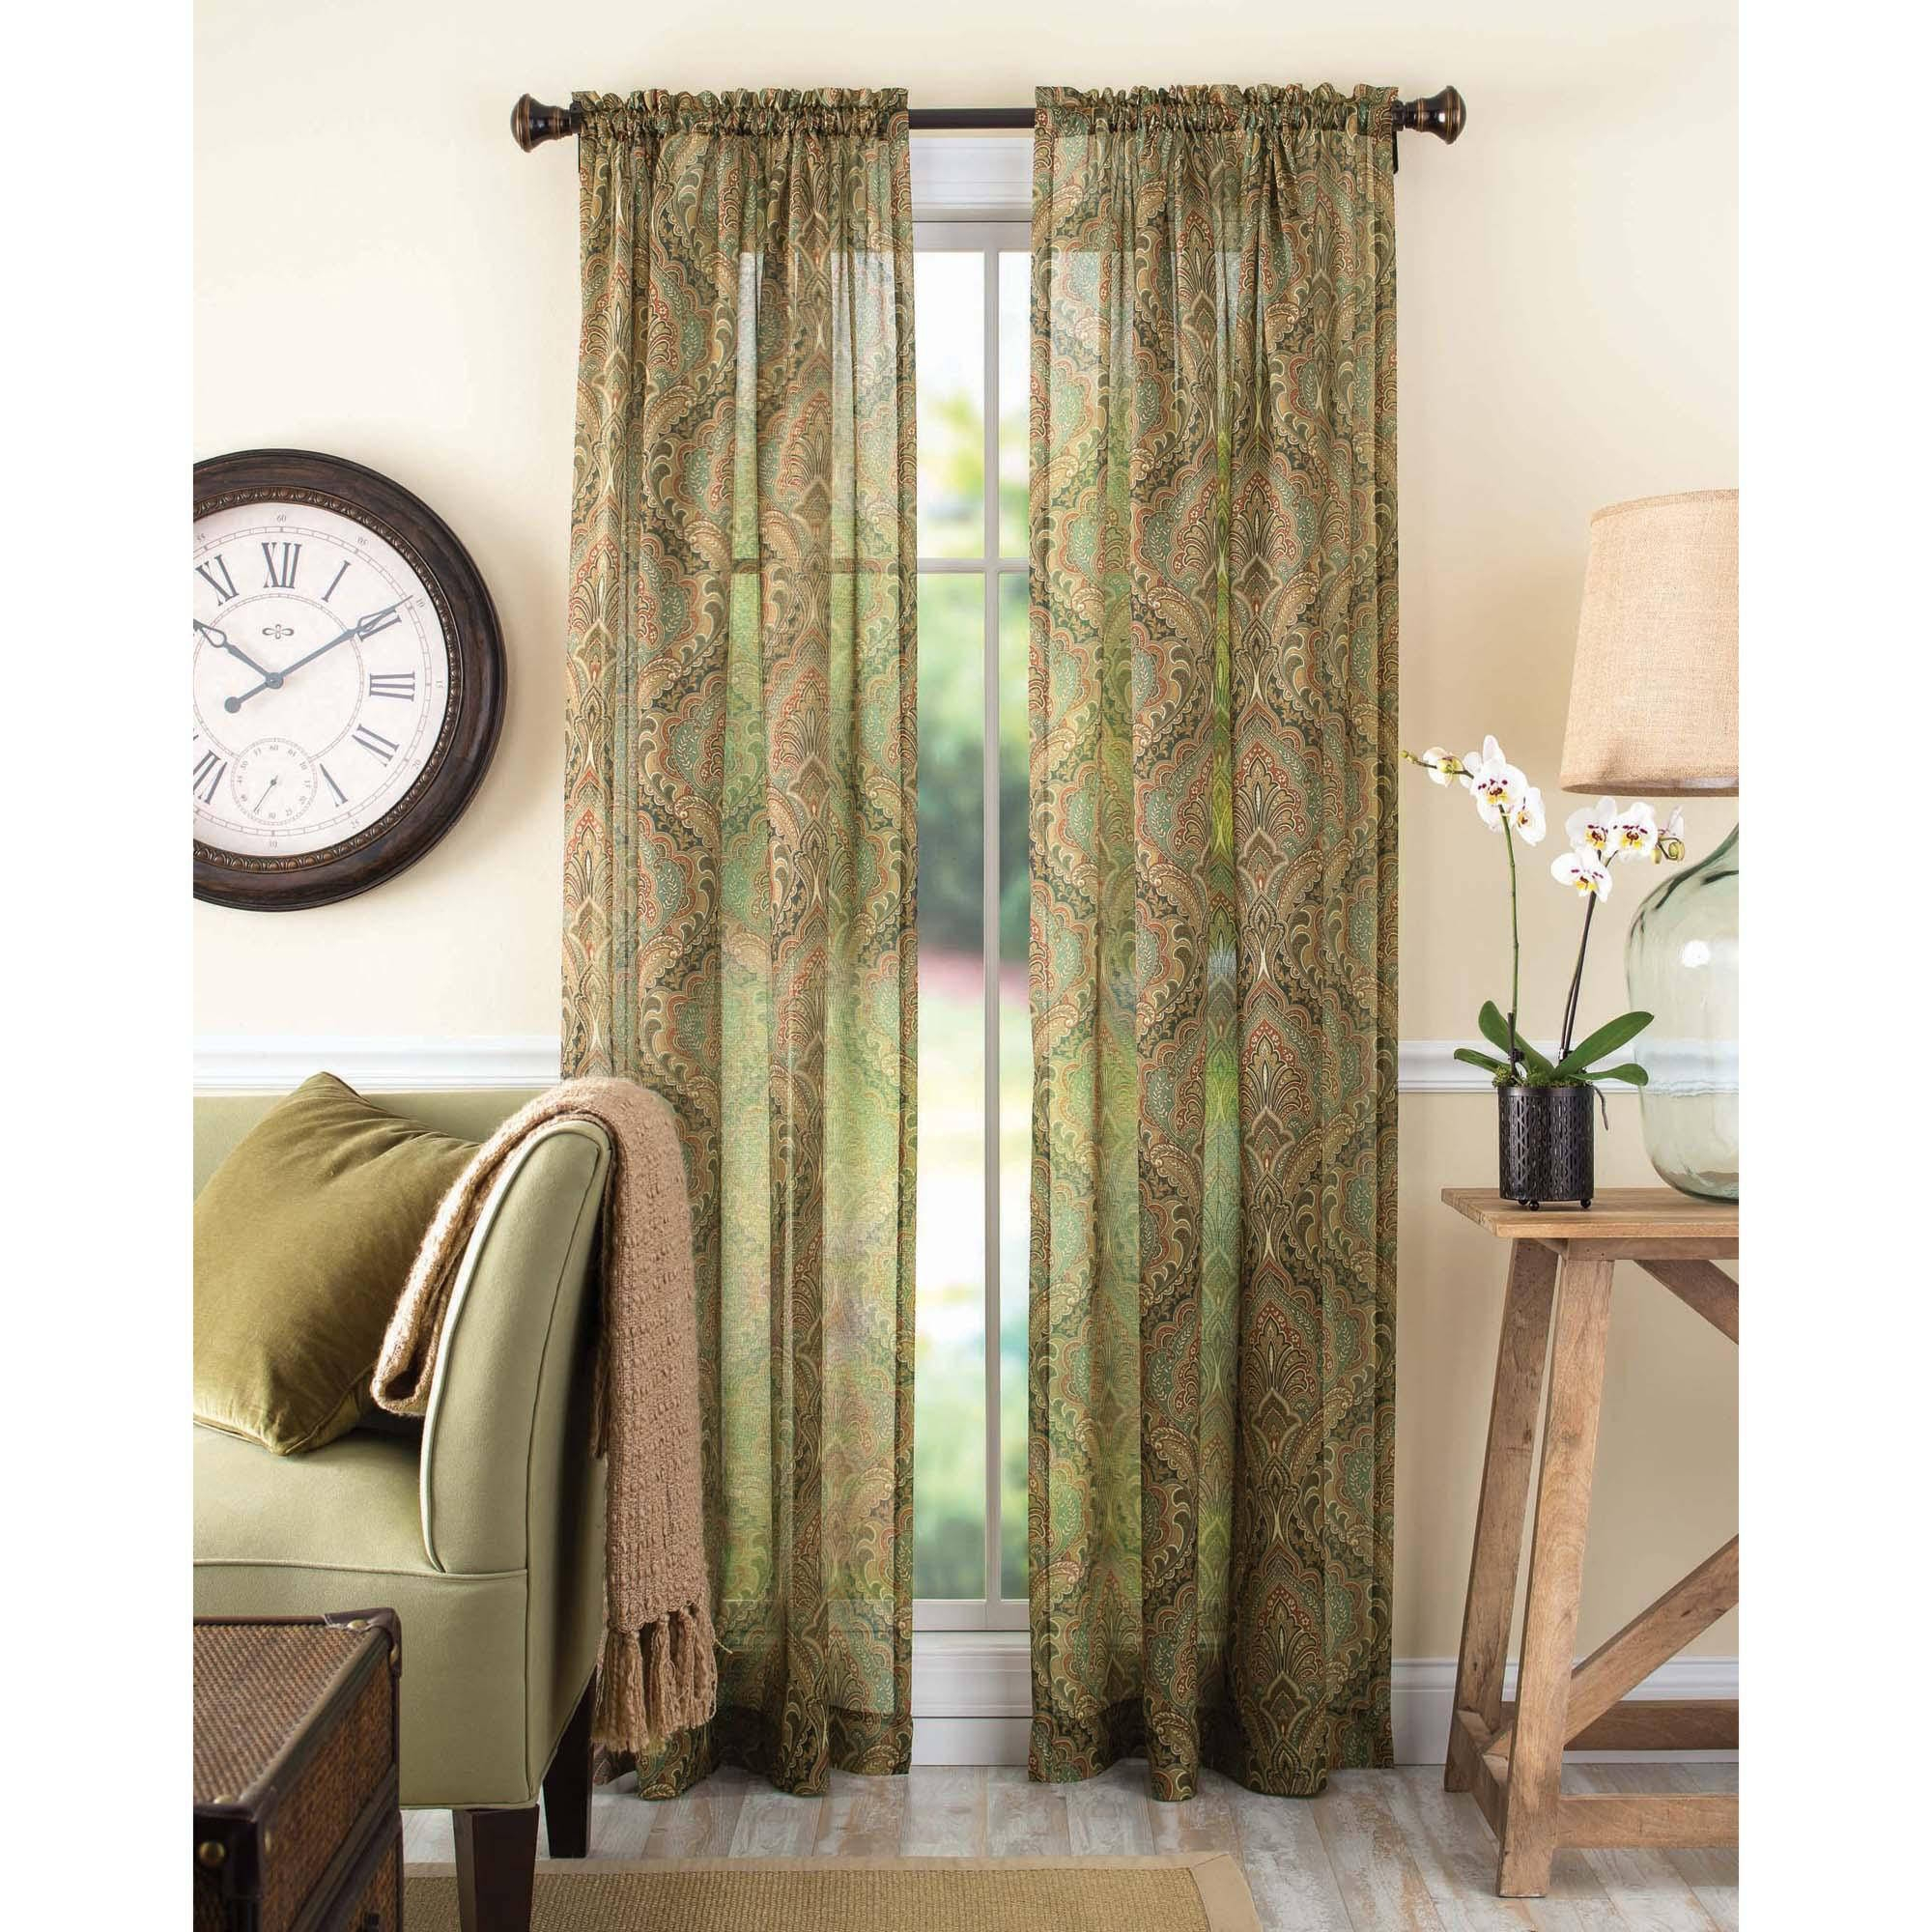 Better Homes And Gardens Tapestry Sheer Curtain Panel Walmart Regarding Pattern Curtain Panels (Image 2 of 25)